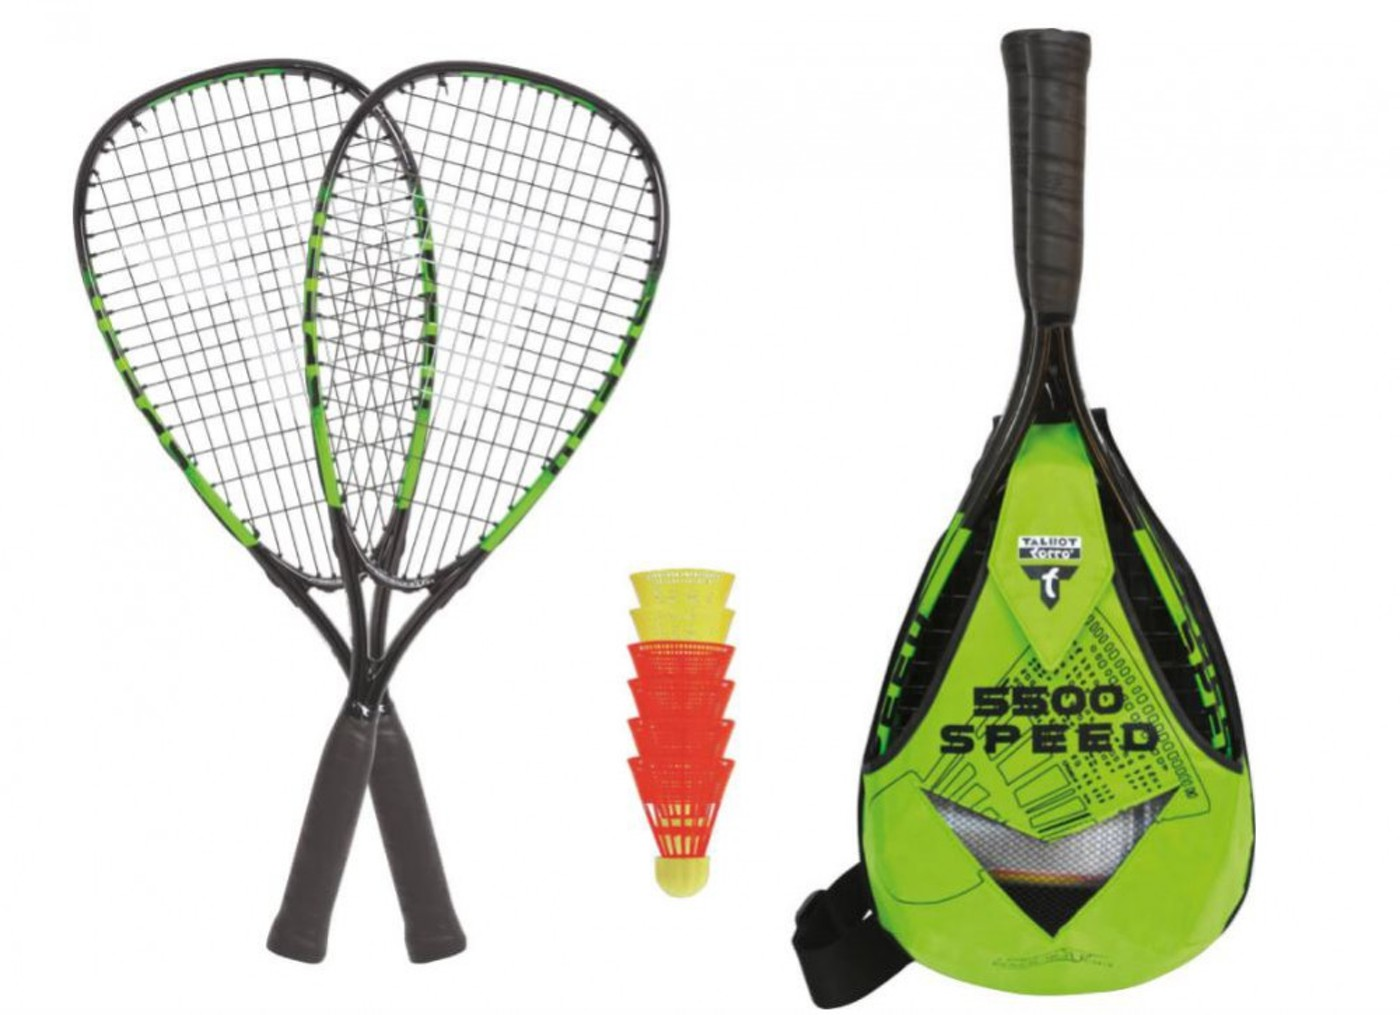 TALBOT TORRO Speedbadminton Set Speed 5500